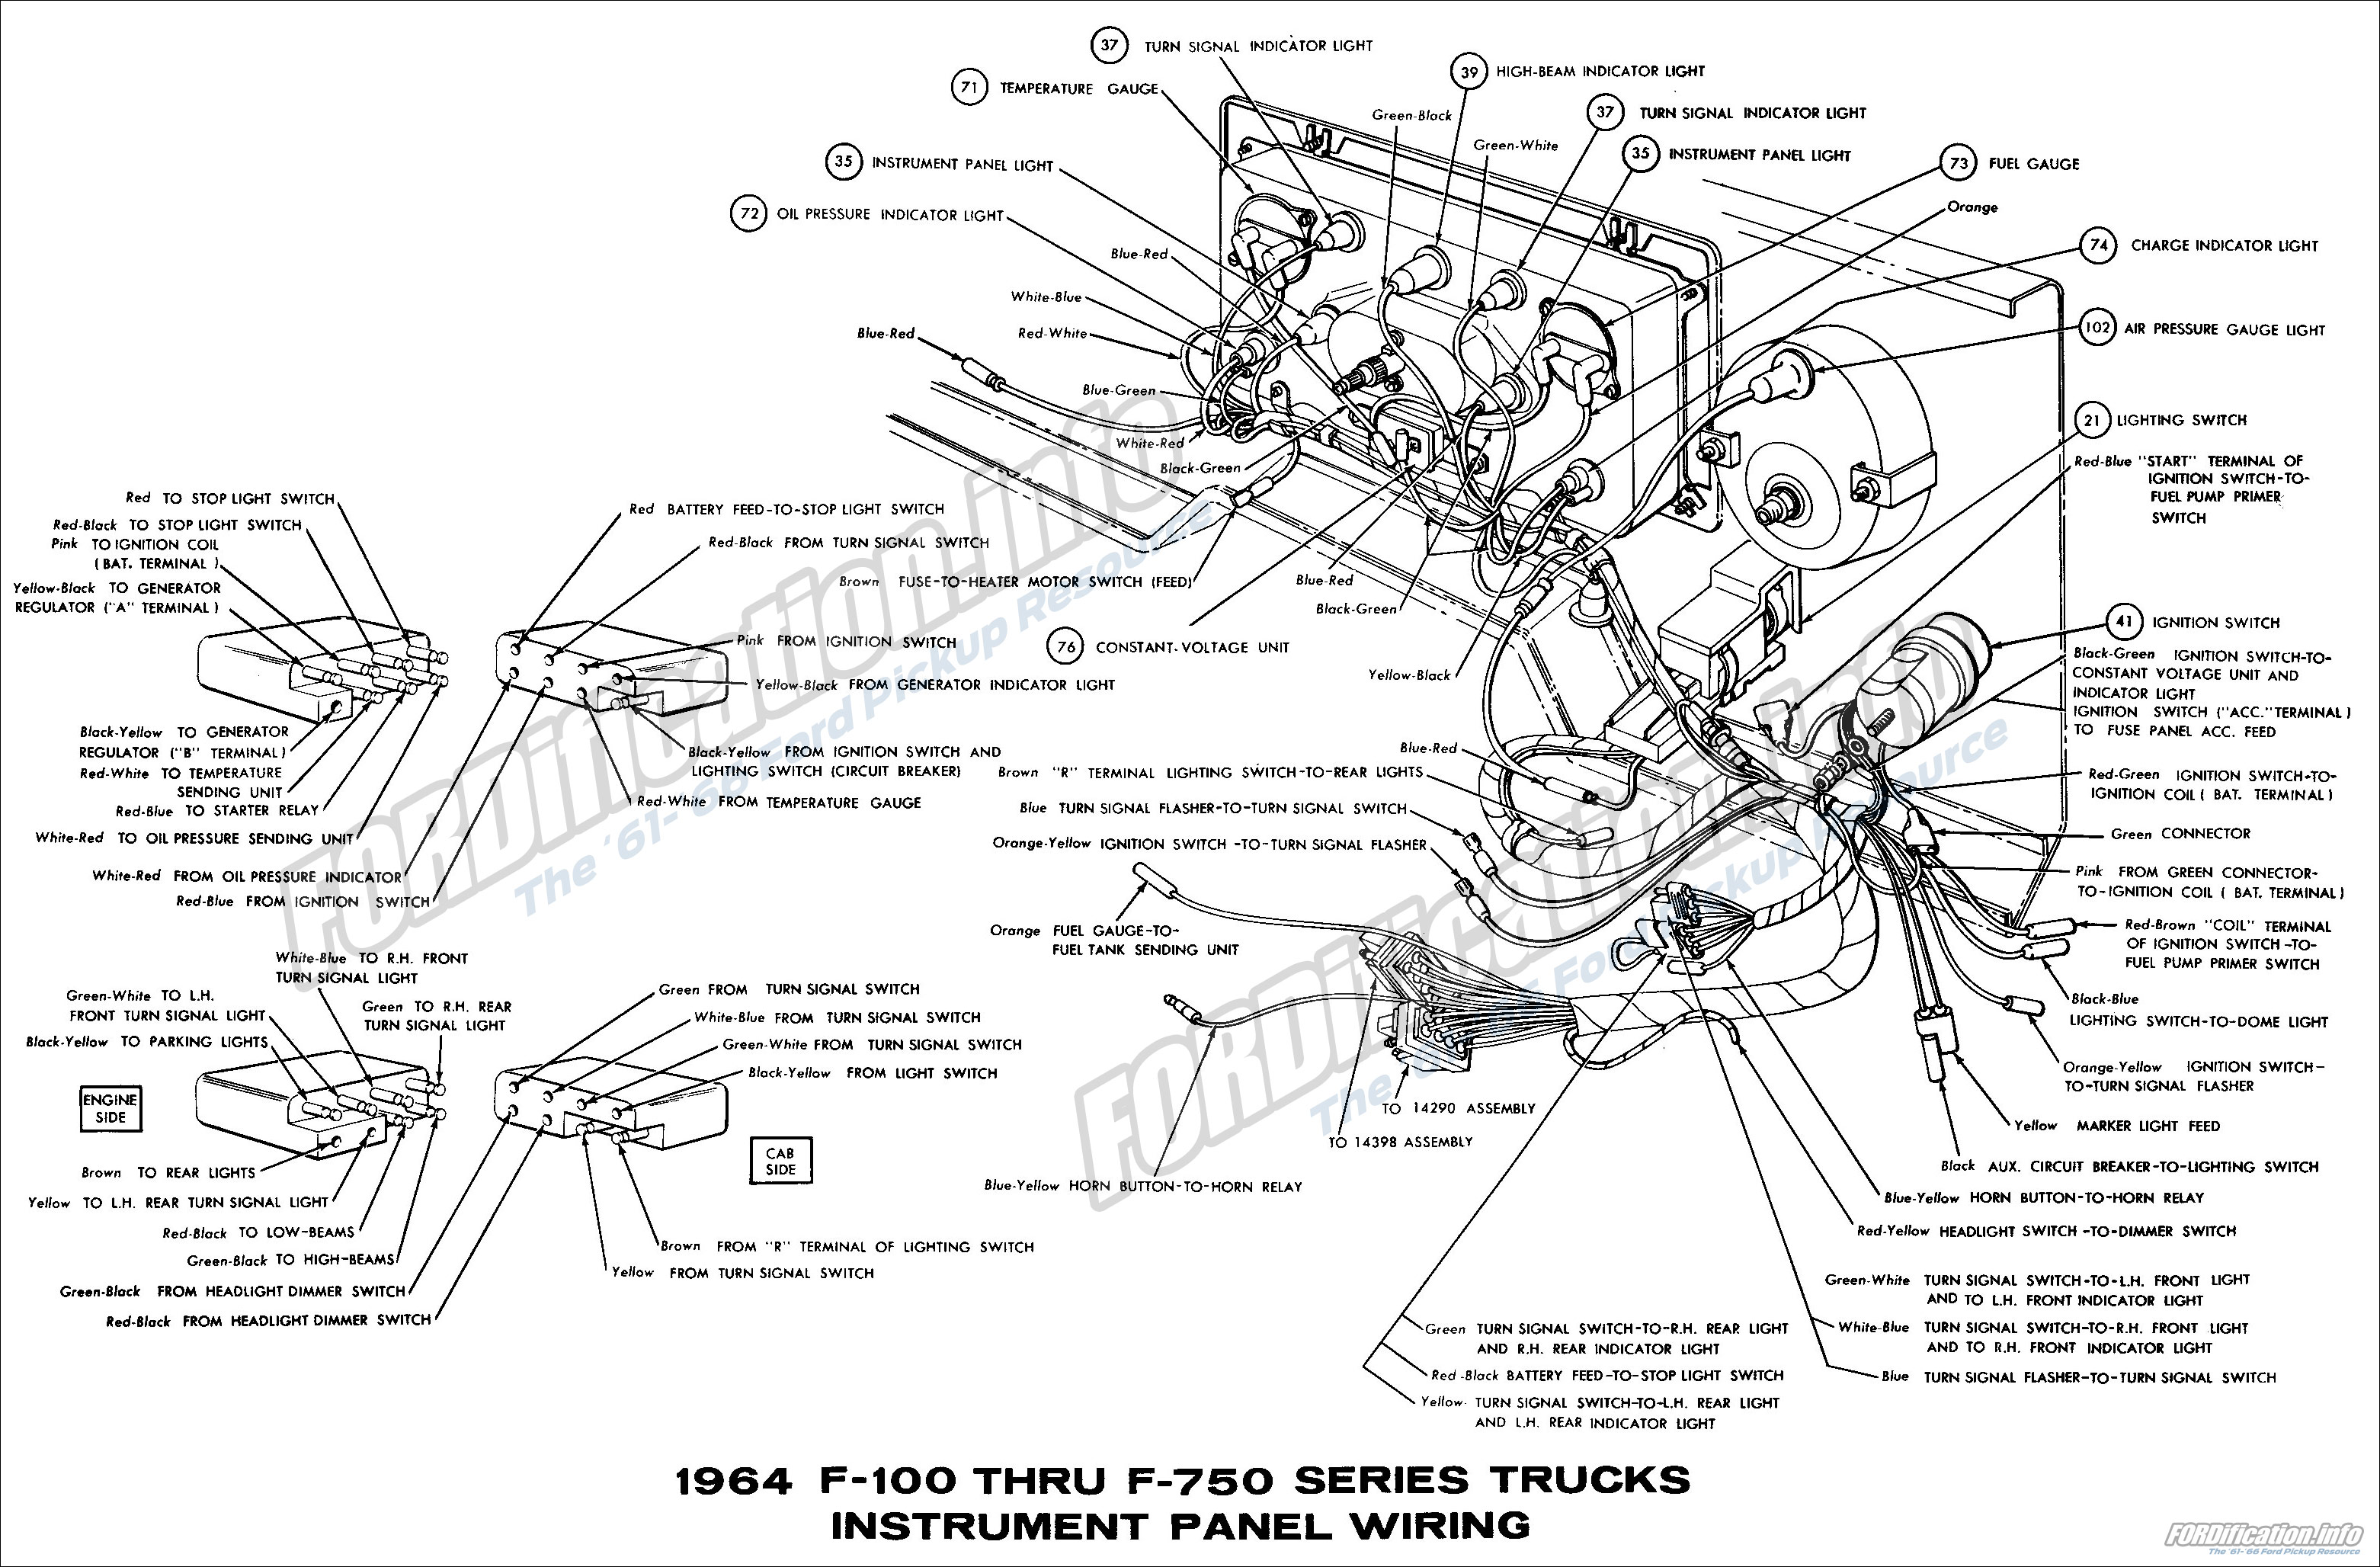 1964 ford truck wiring diagrams fordification info the \u002761 \u002766 2001 Ford F750 Ignition Wire Schematic